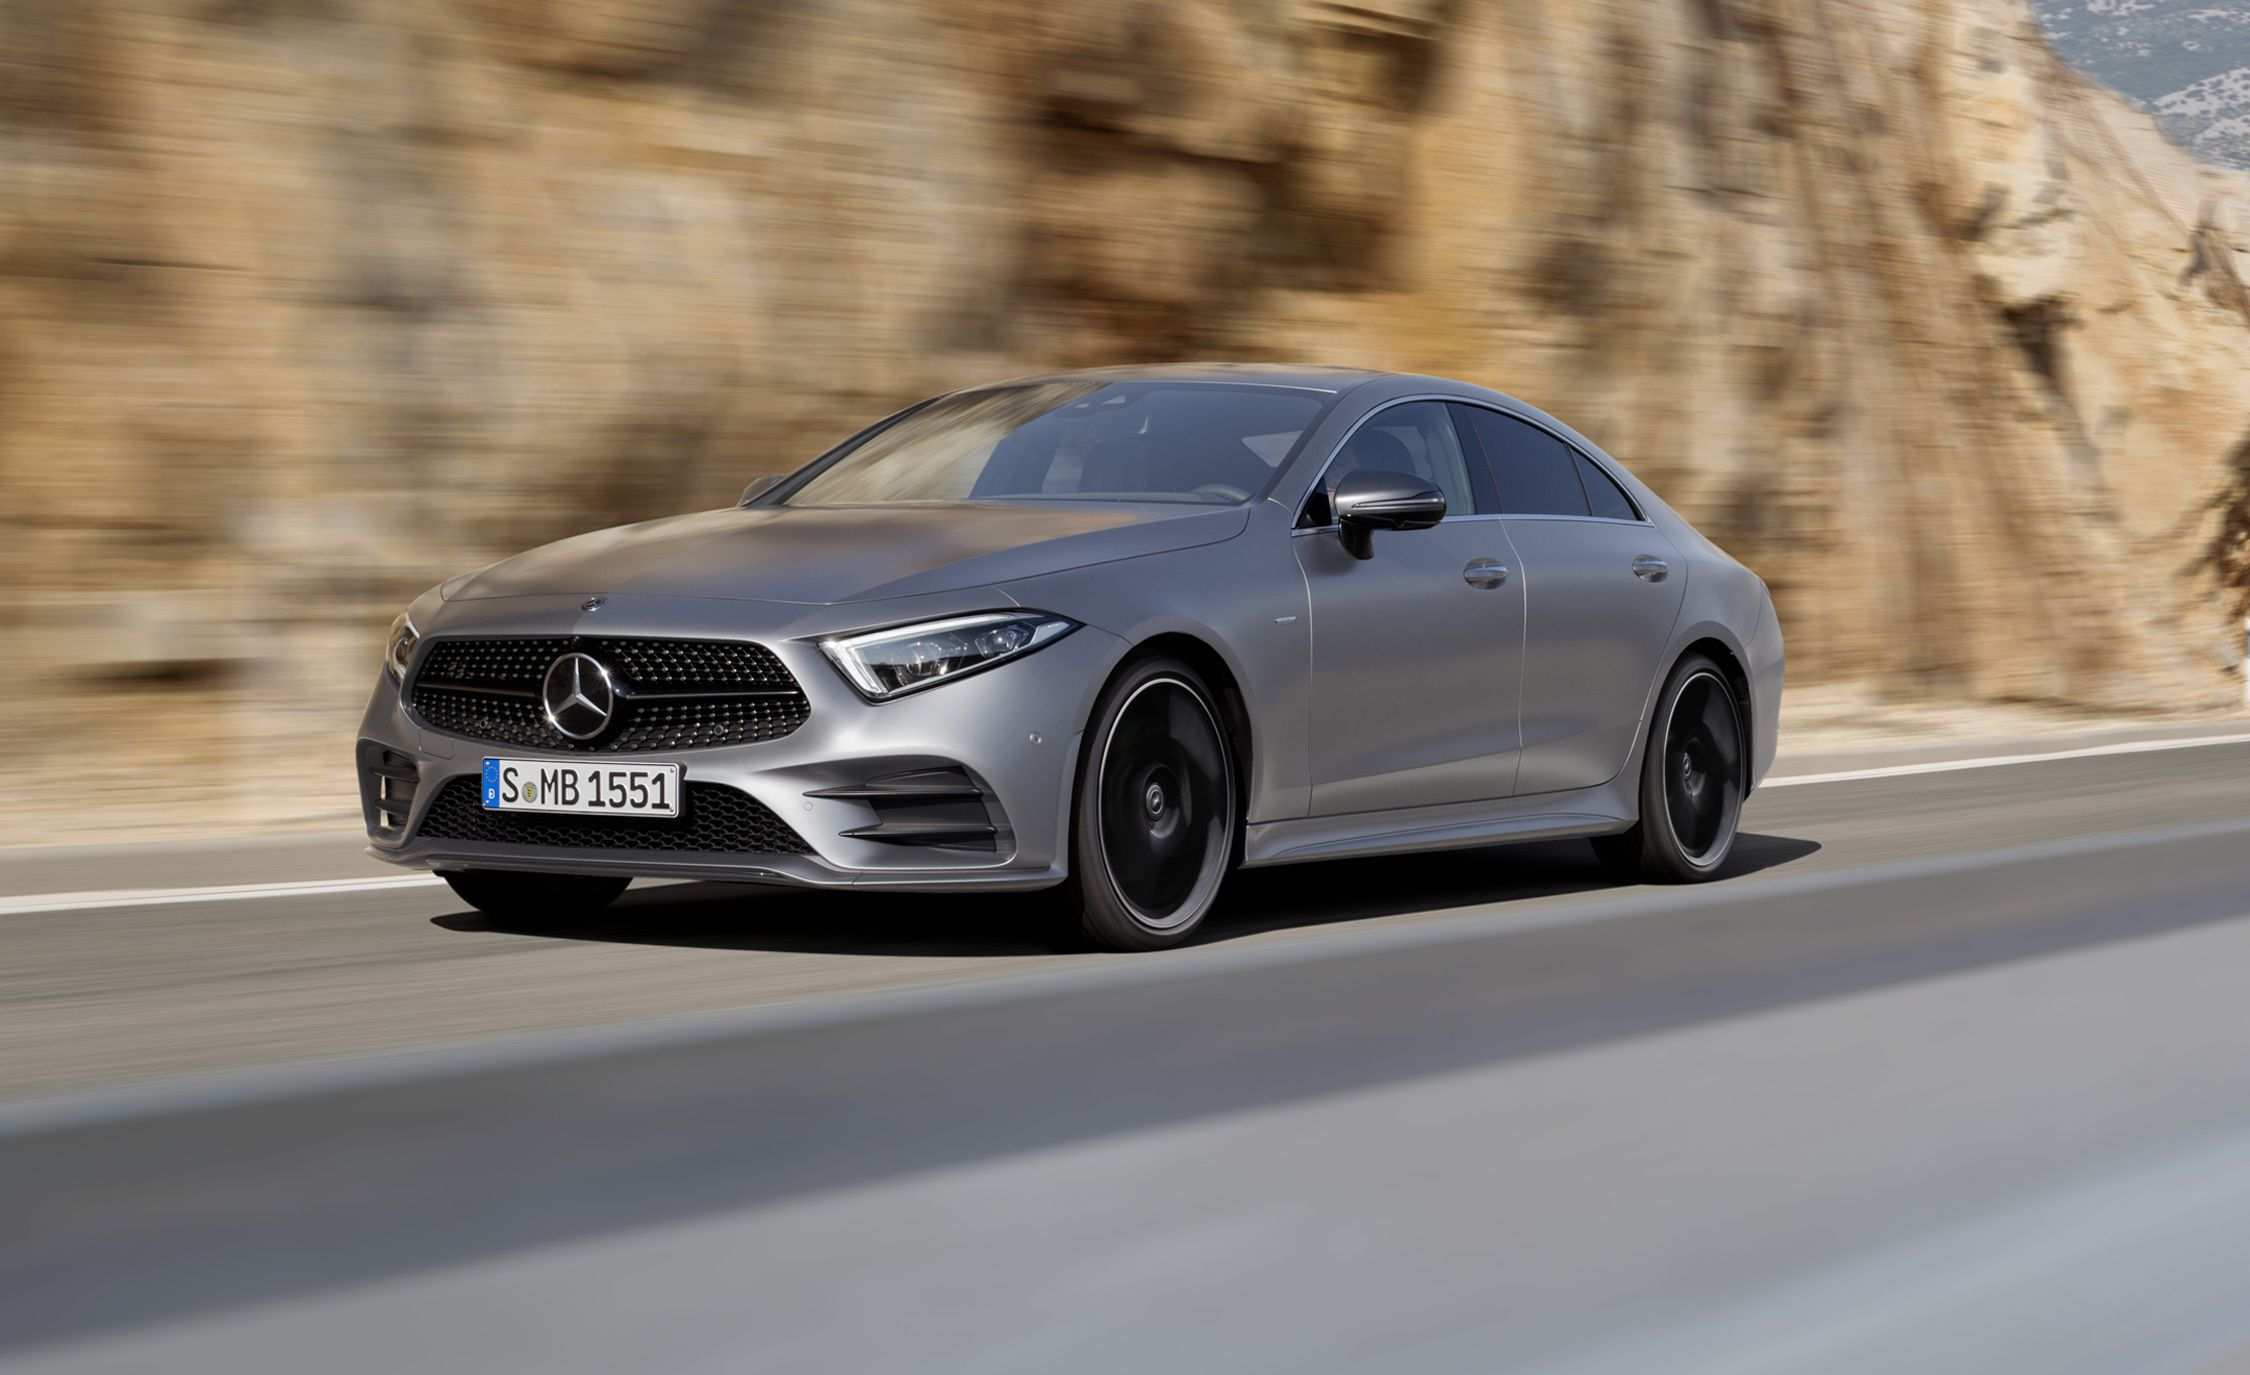 61 Great 2020 Mercedes Cls Class Configurations by 2020 Mercedes Cls Class